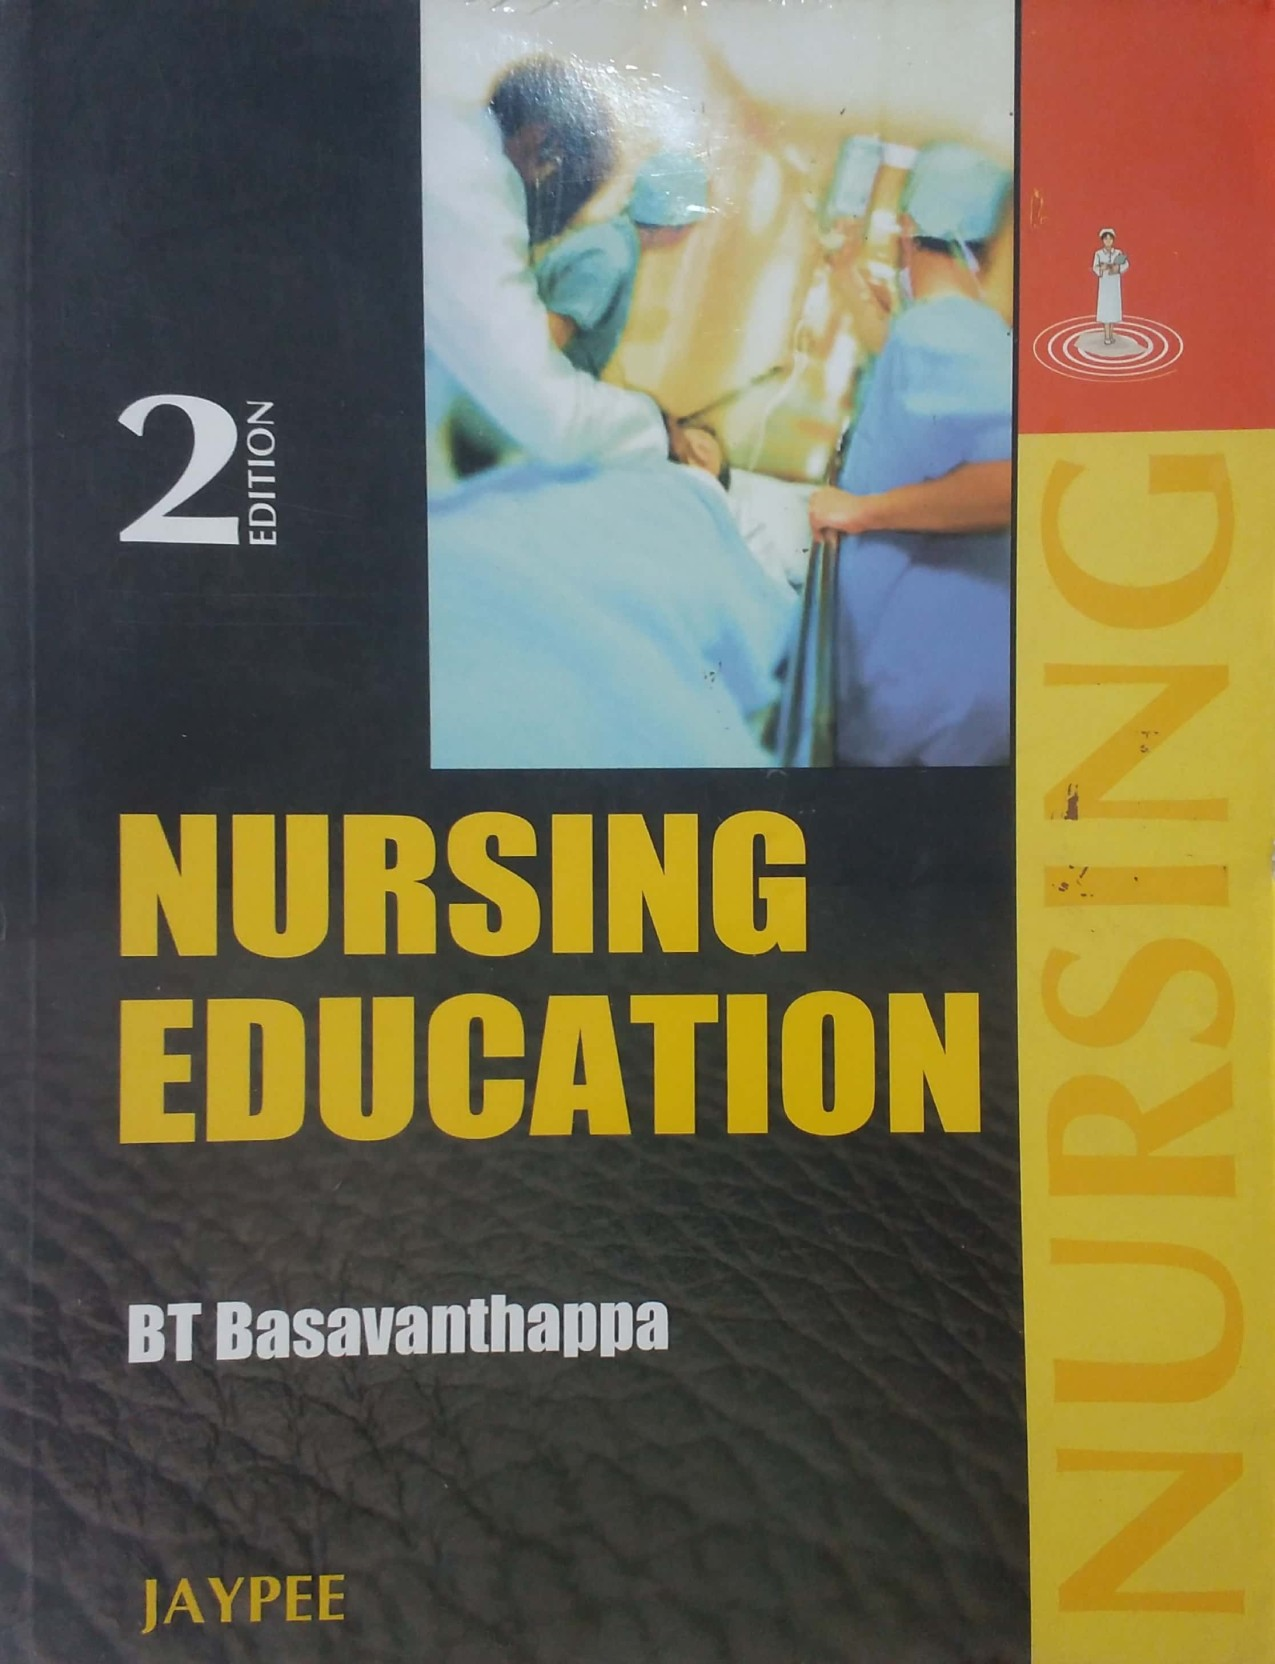 Nursing Education 2nd Edition. ADD TO CART